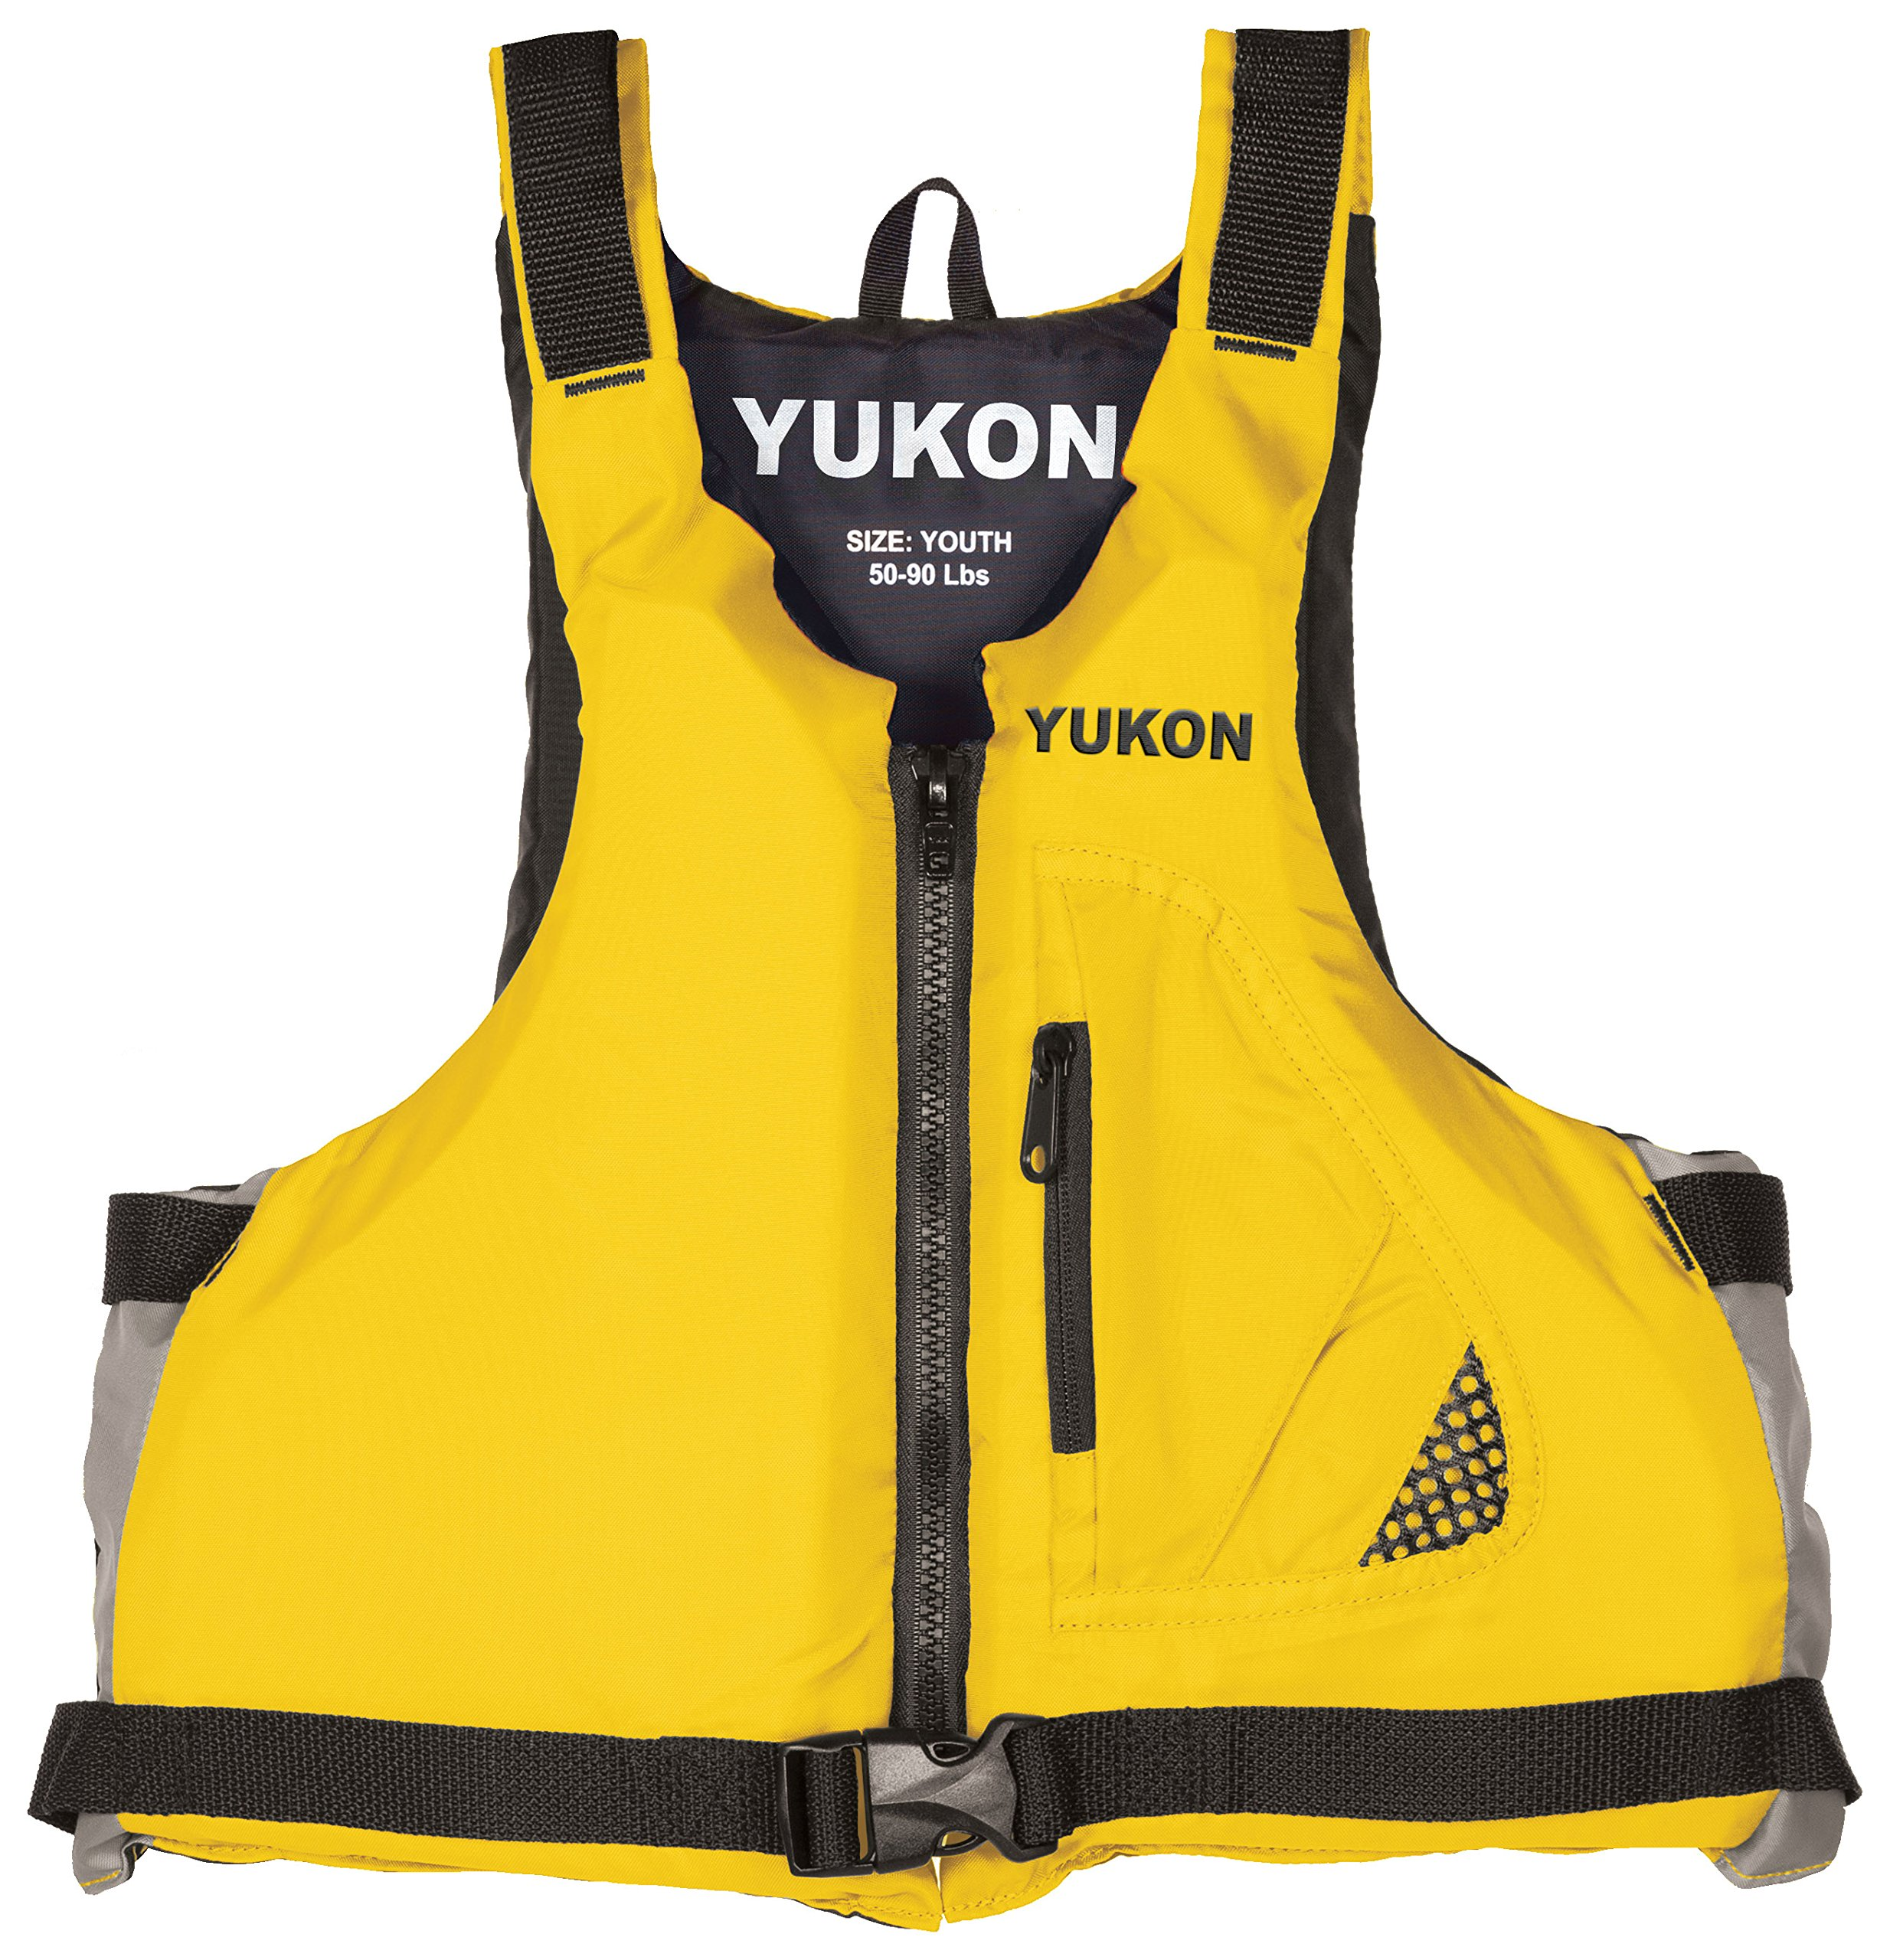 YUKON BASE Paddle Vest, Yellow by Airhead